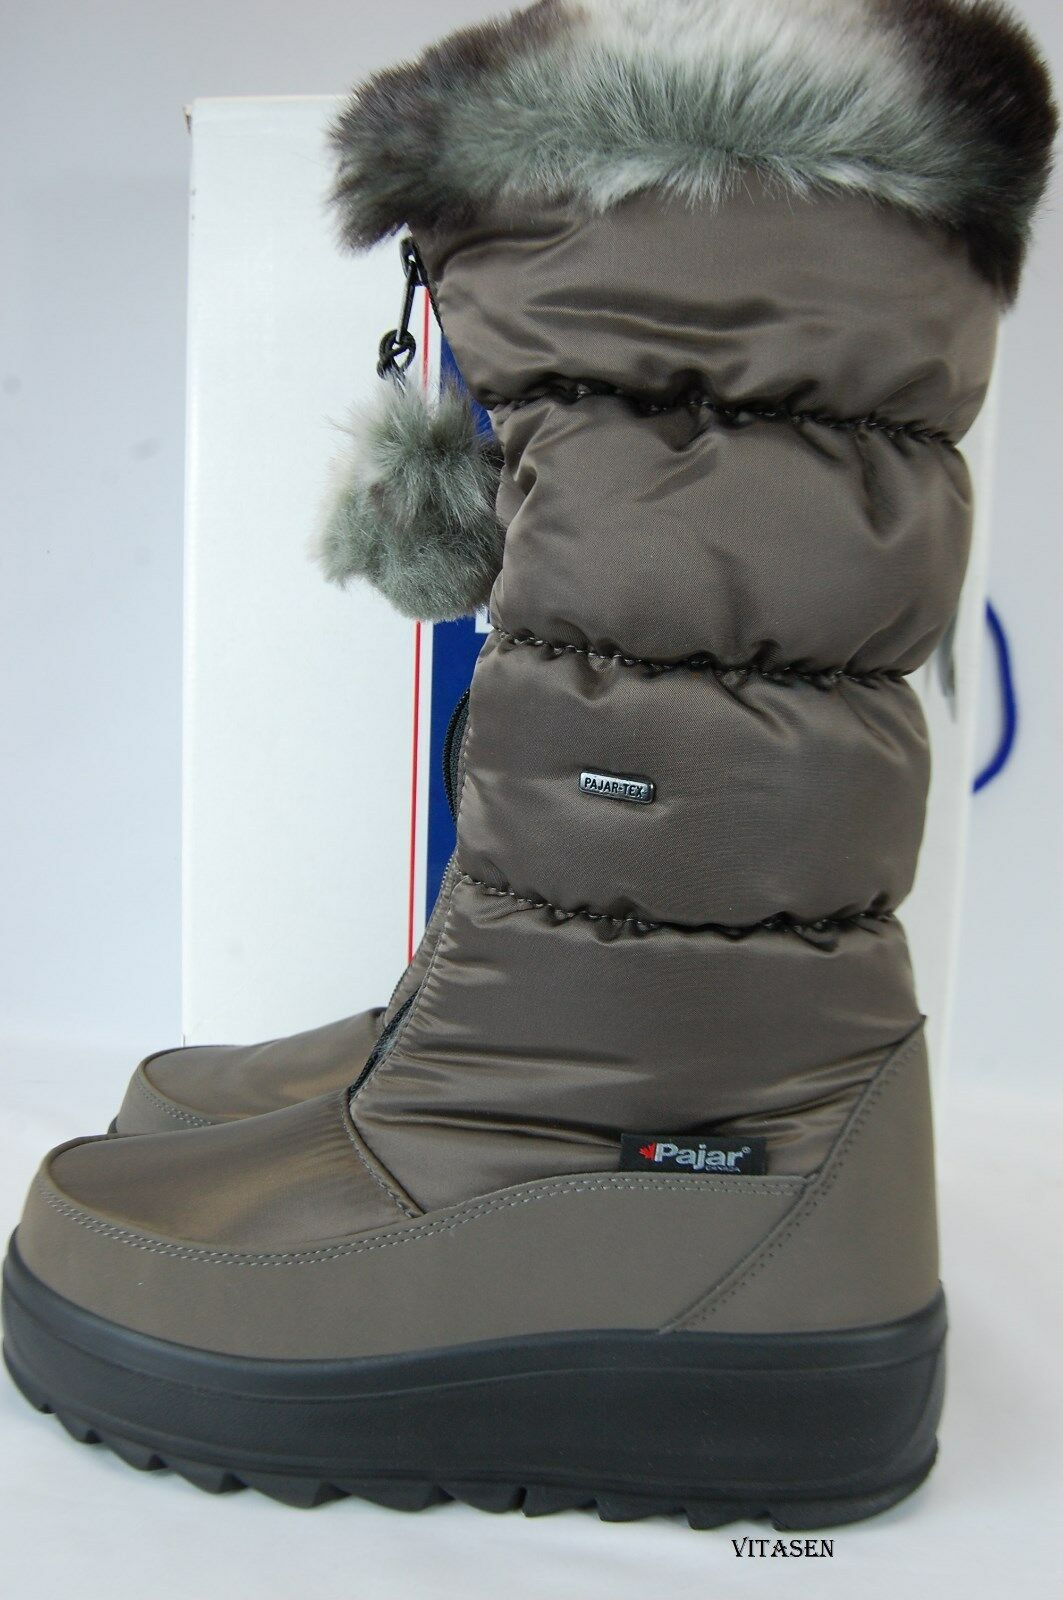 185 Pajar Canada Tobogan Womens taupe tall zippered winter boots size 10/40 NWB